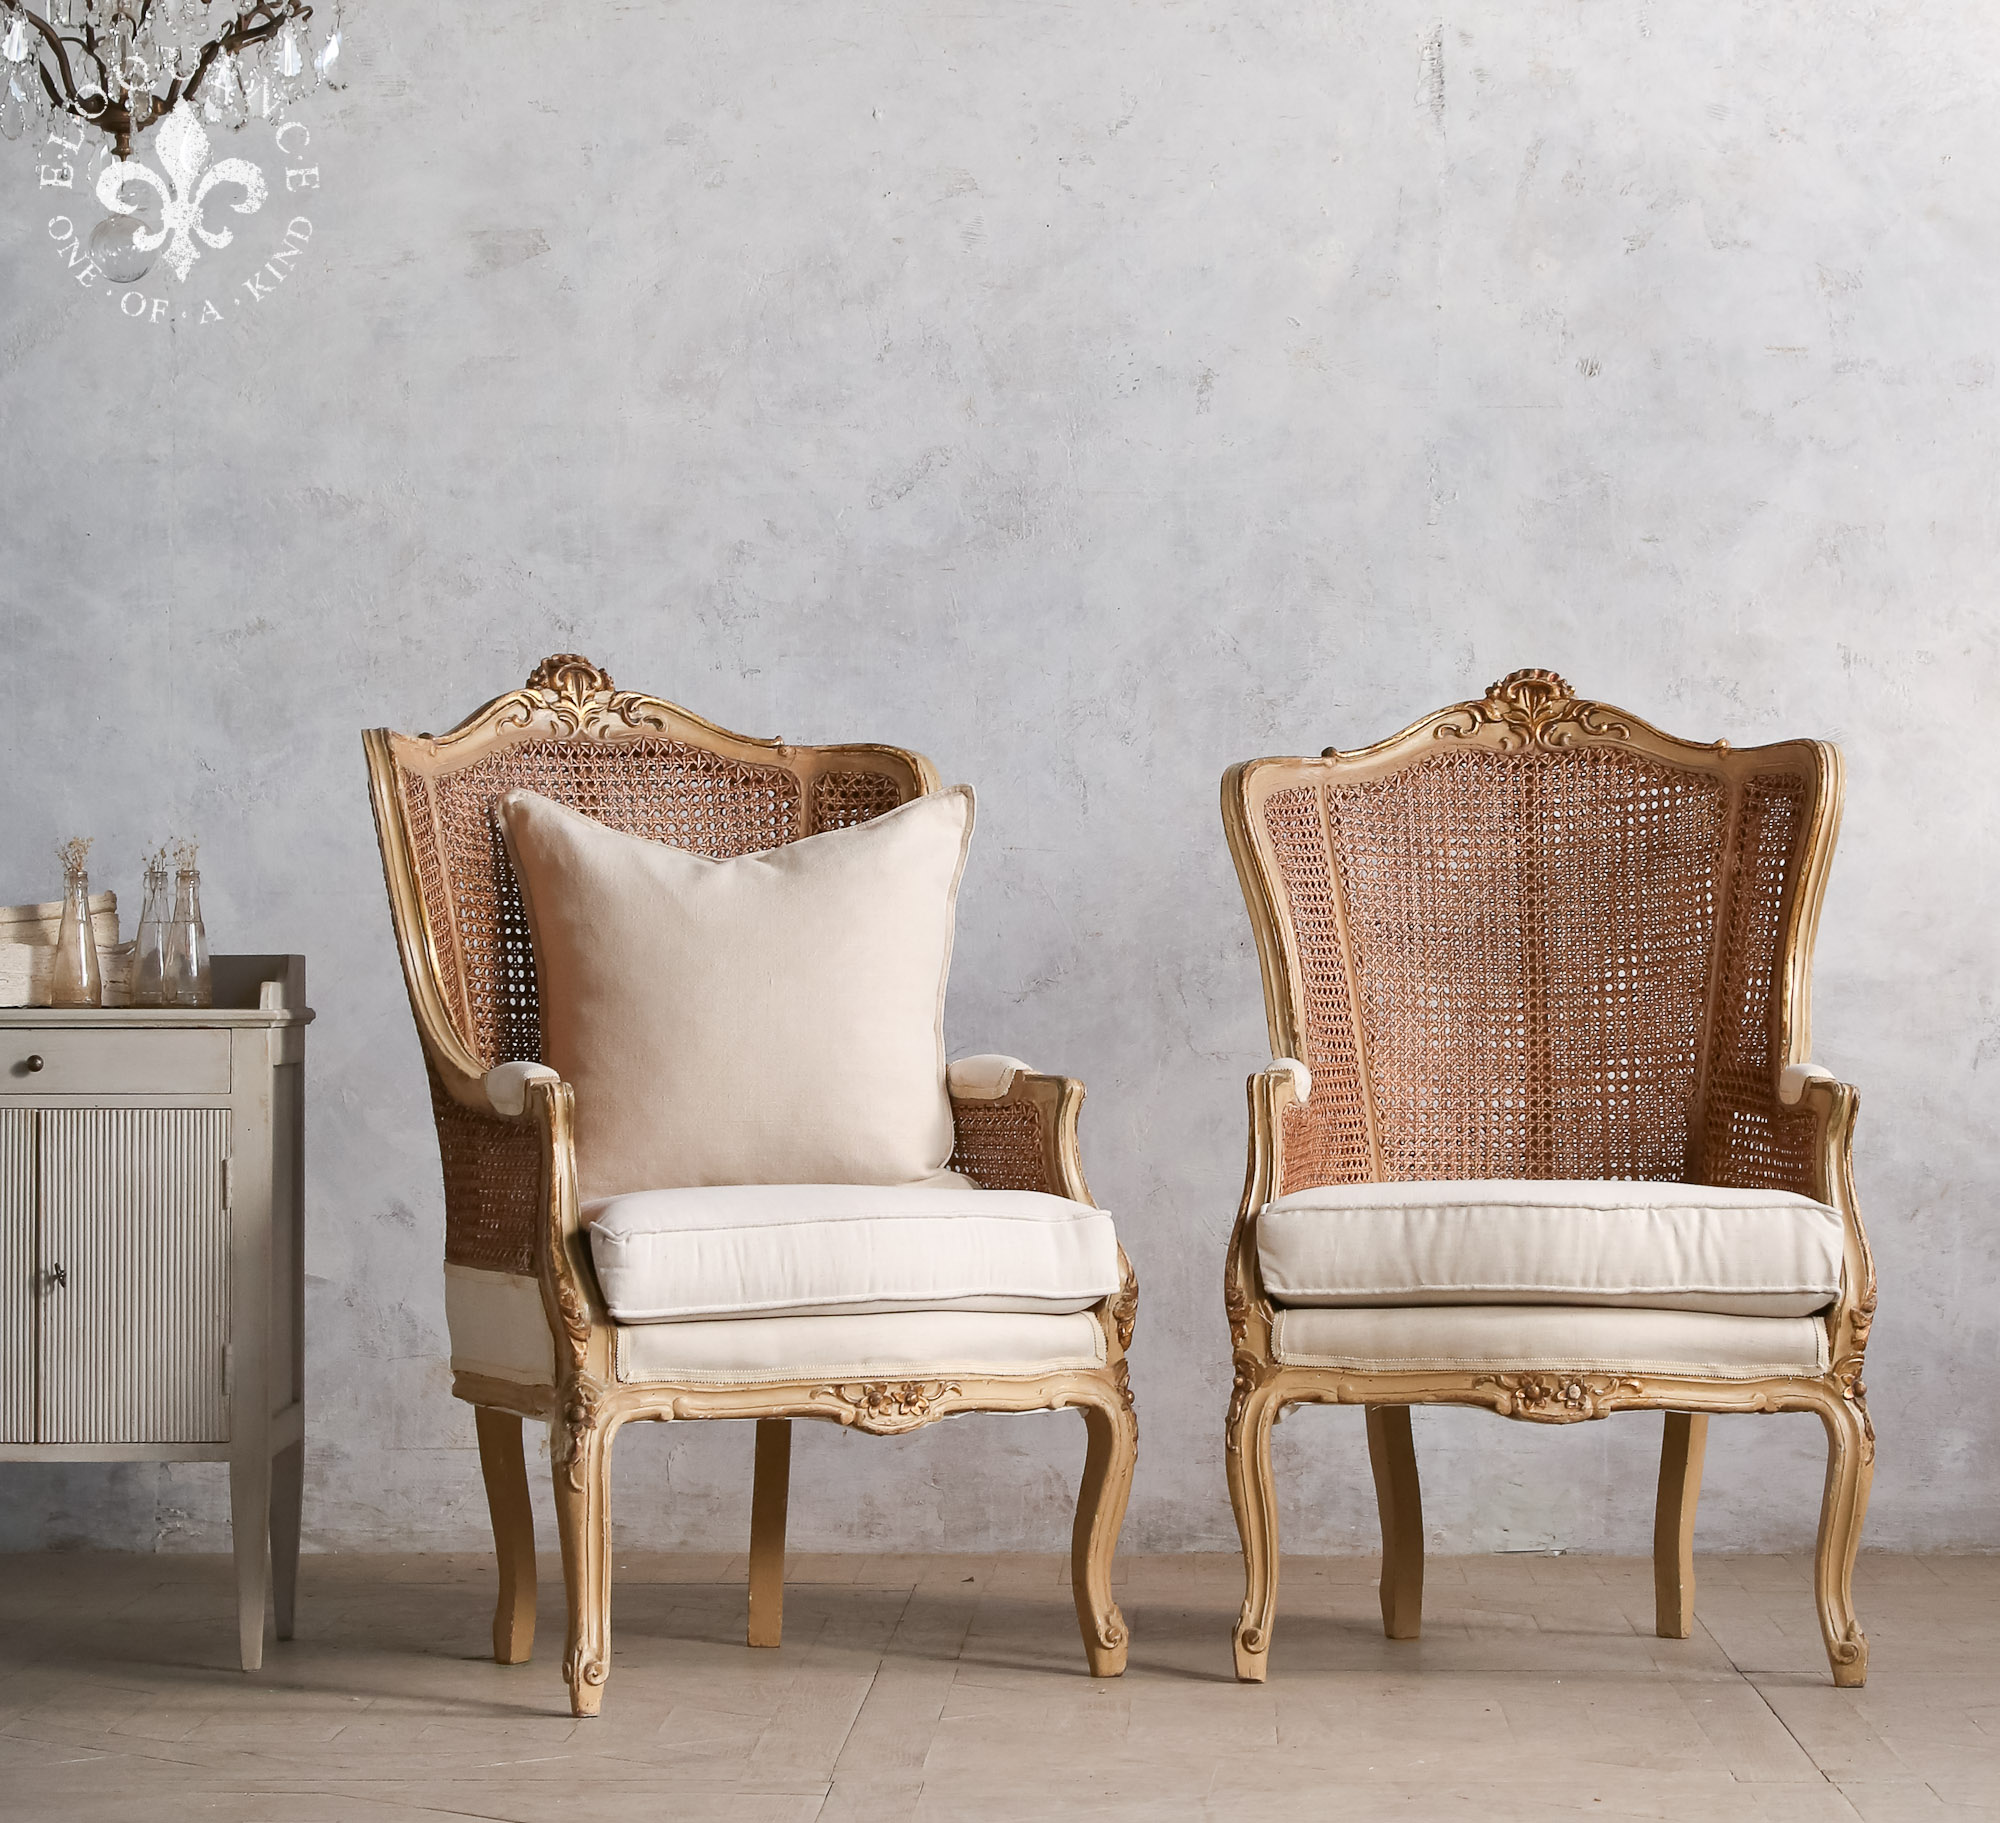 Cane back chairs Vintage France.jpg